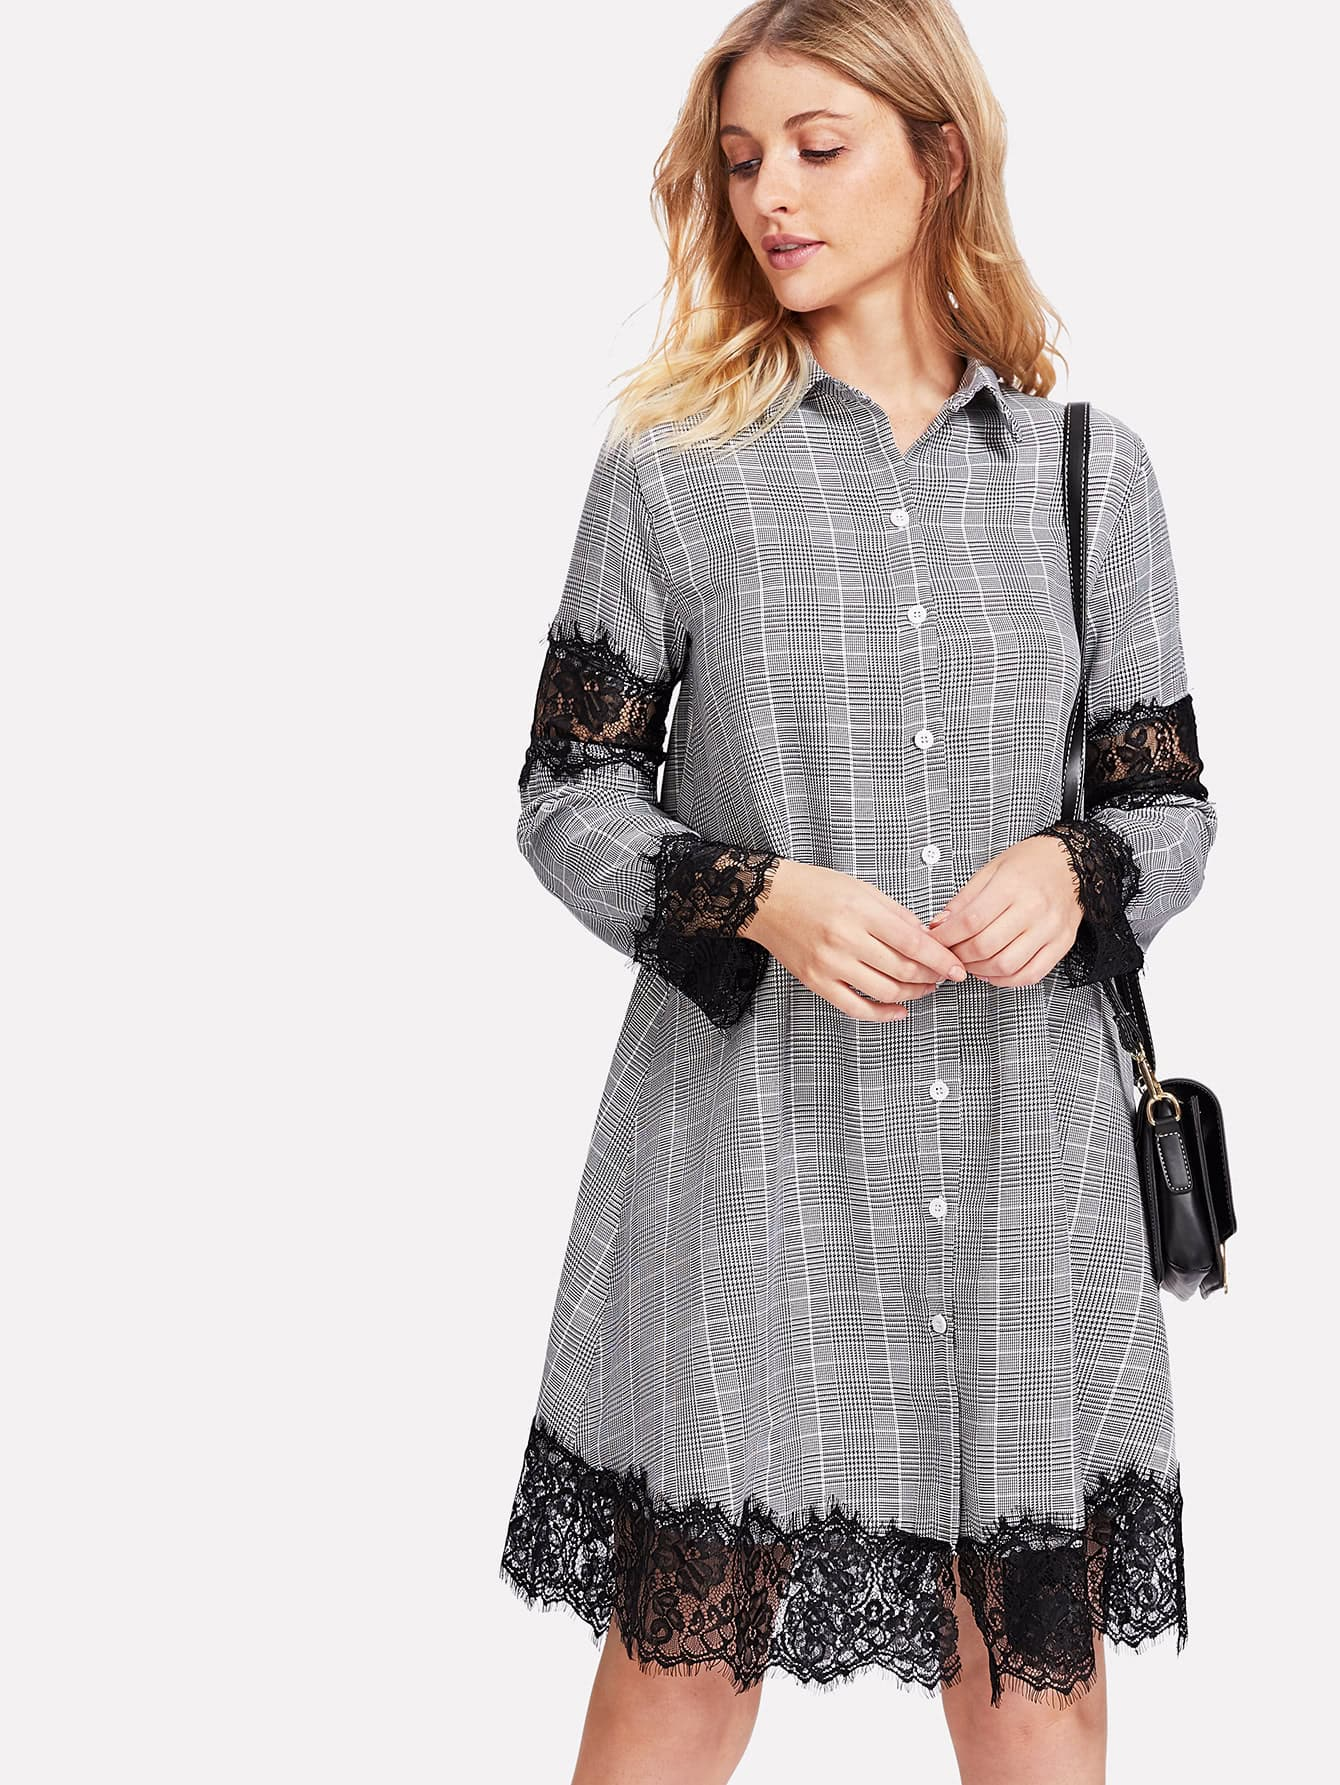 Contrast Eyelash Lace Glen Plaid Shirt Dress contrast eyelash lace t shirt